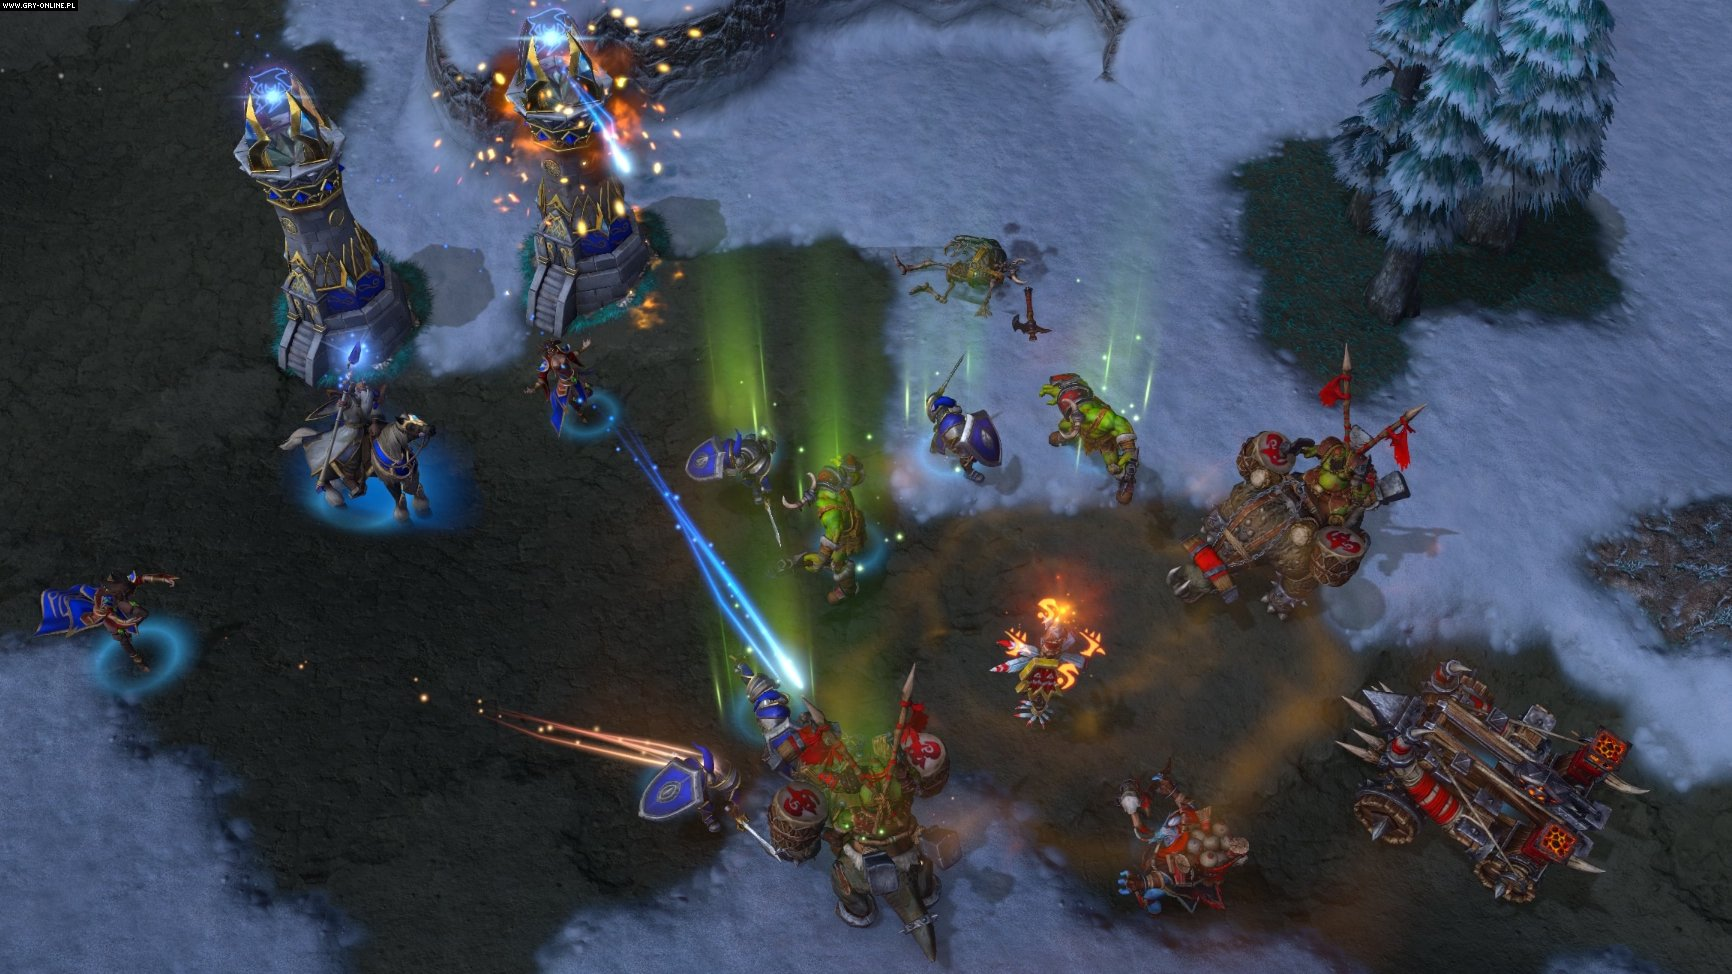 Warcraft III: Reforged PC Games Image 4/41, Blizzard Entertainment, Activision Blizzard